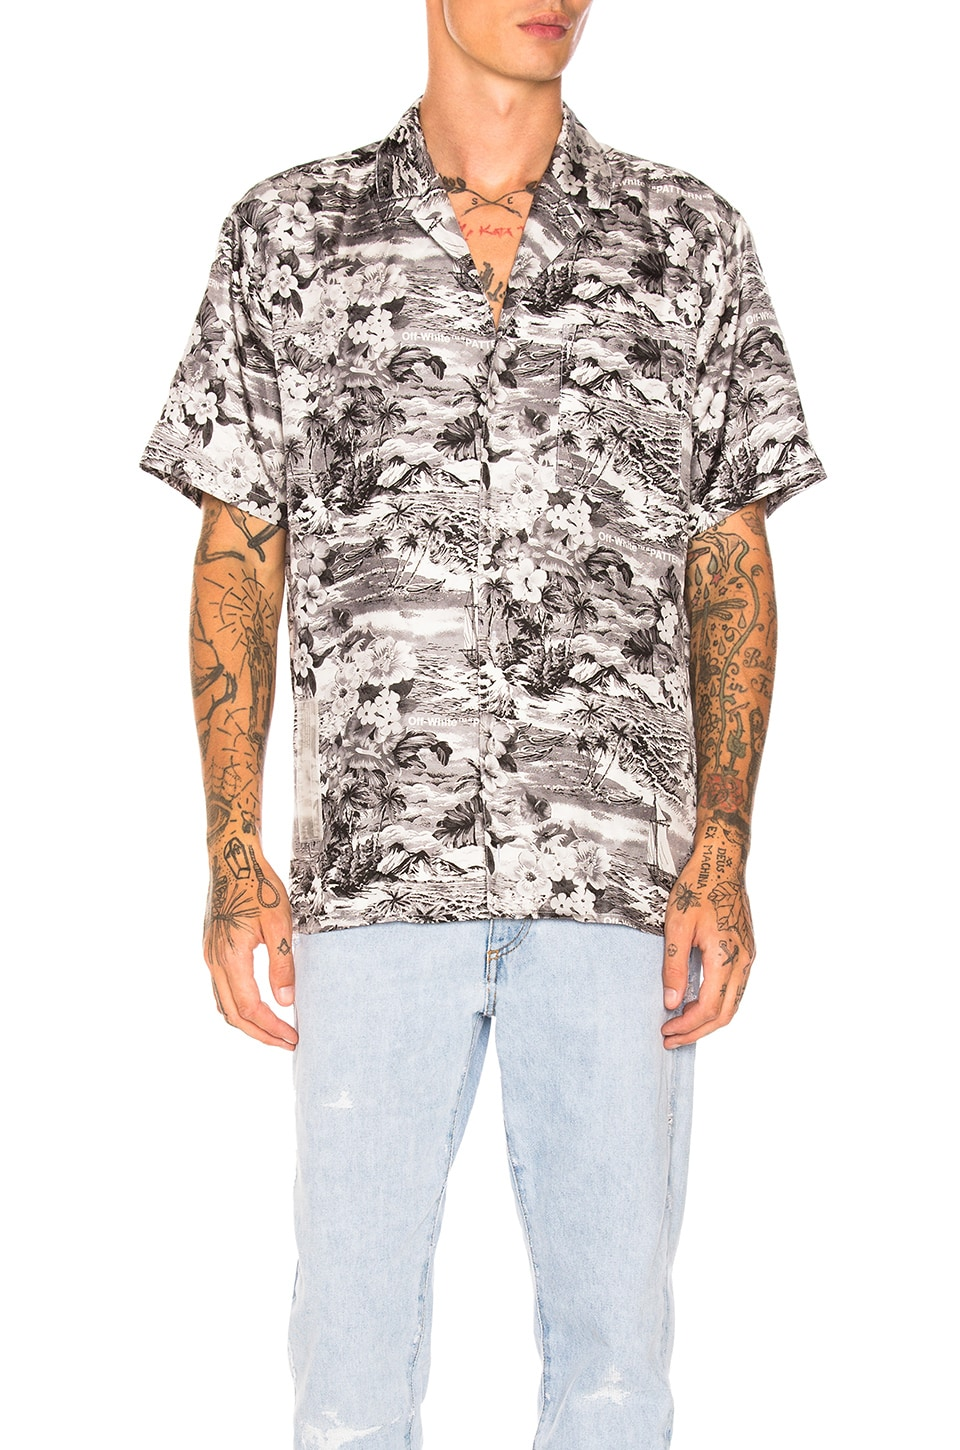 64a54132 OFF-WHITE Hawaiian Shirt in Black & White | REVOLVE